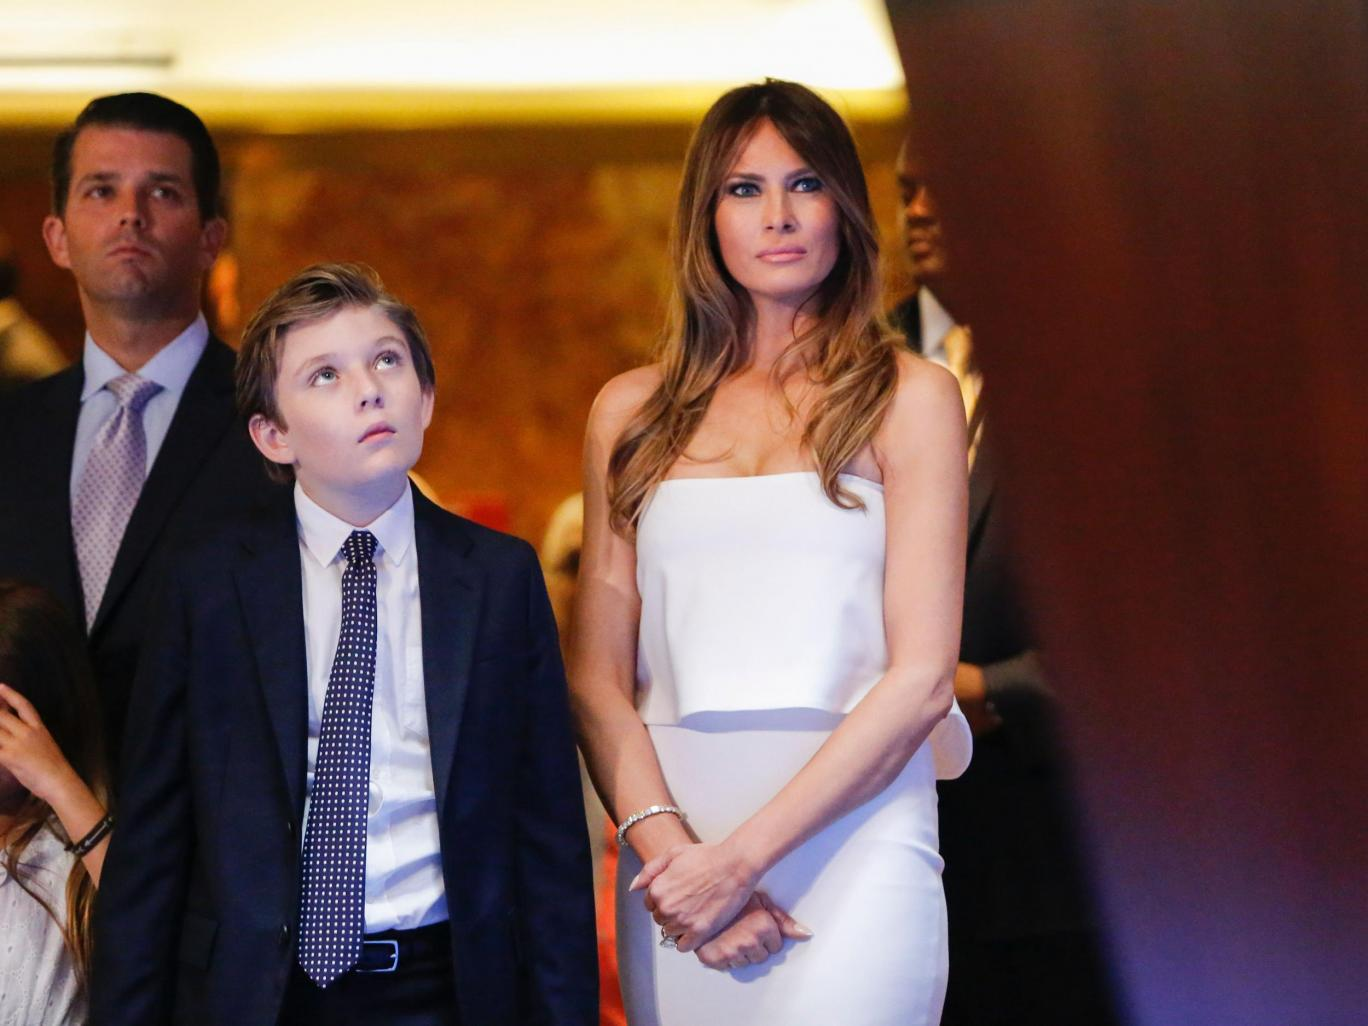 Donald Trump wouldn't have to make $18m education cuts if Melania lived in White House instead of Trump Tower, figures show